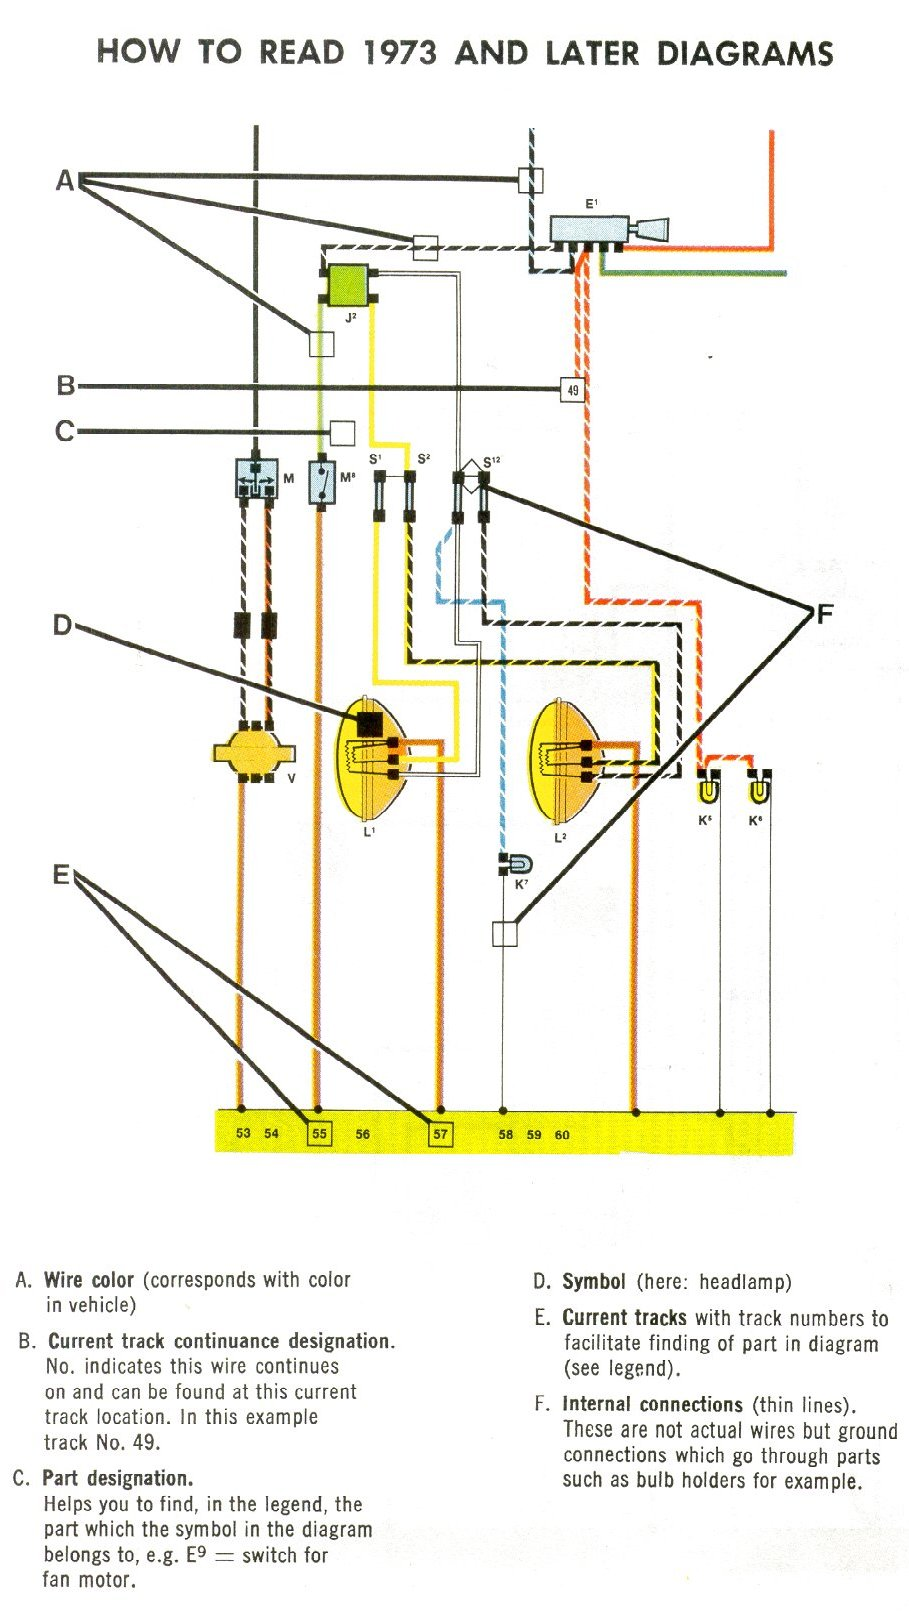 1974 75 super beetle wiring diagram thegoldenbug com wiring diagram for 1979 vw super beetle #3